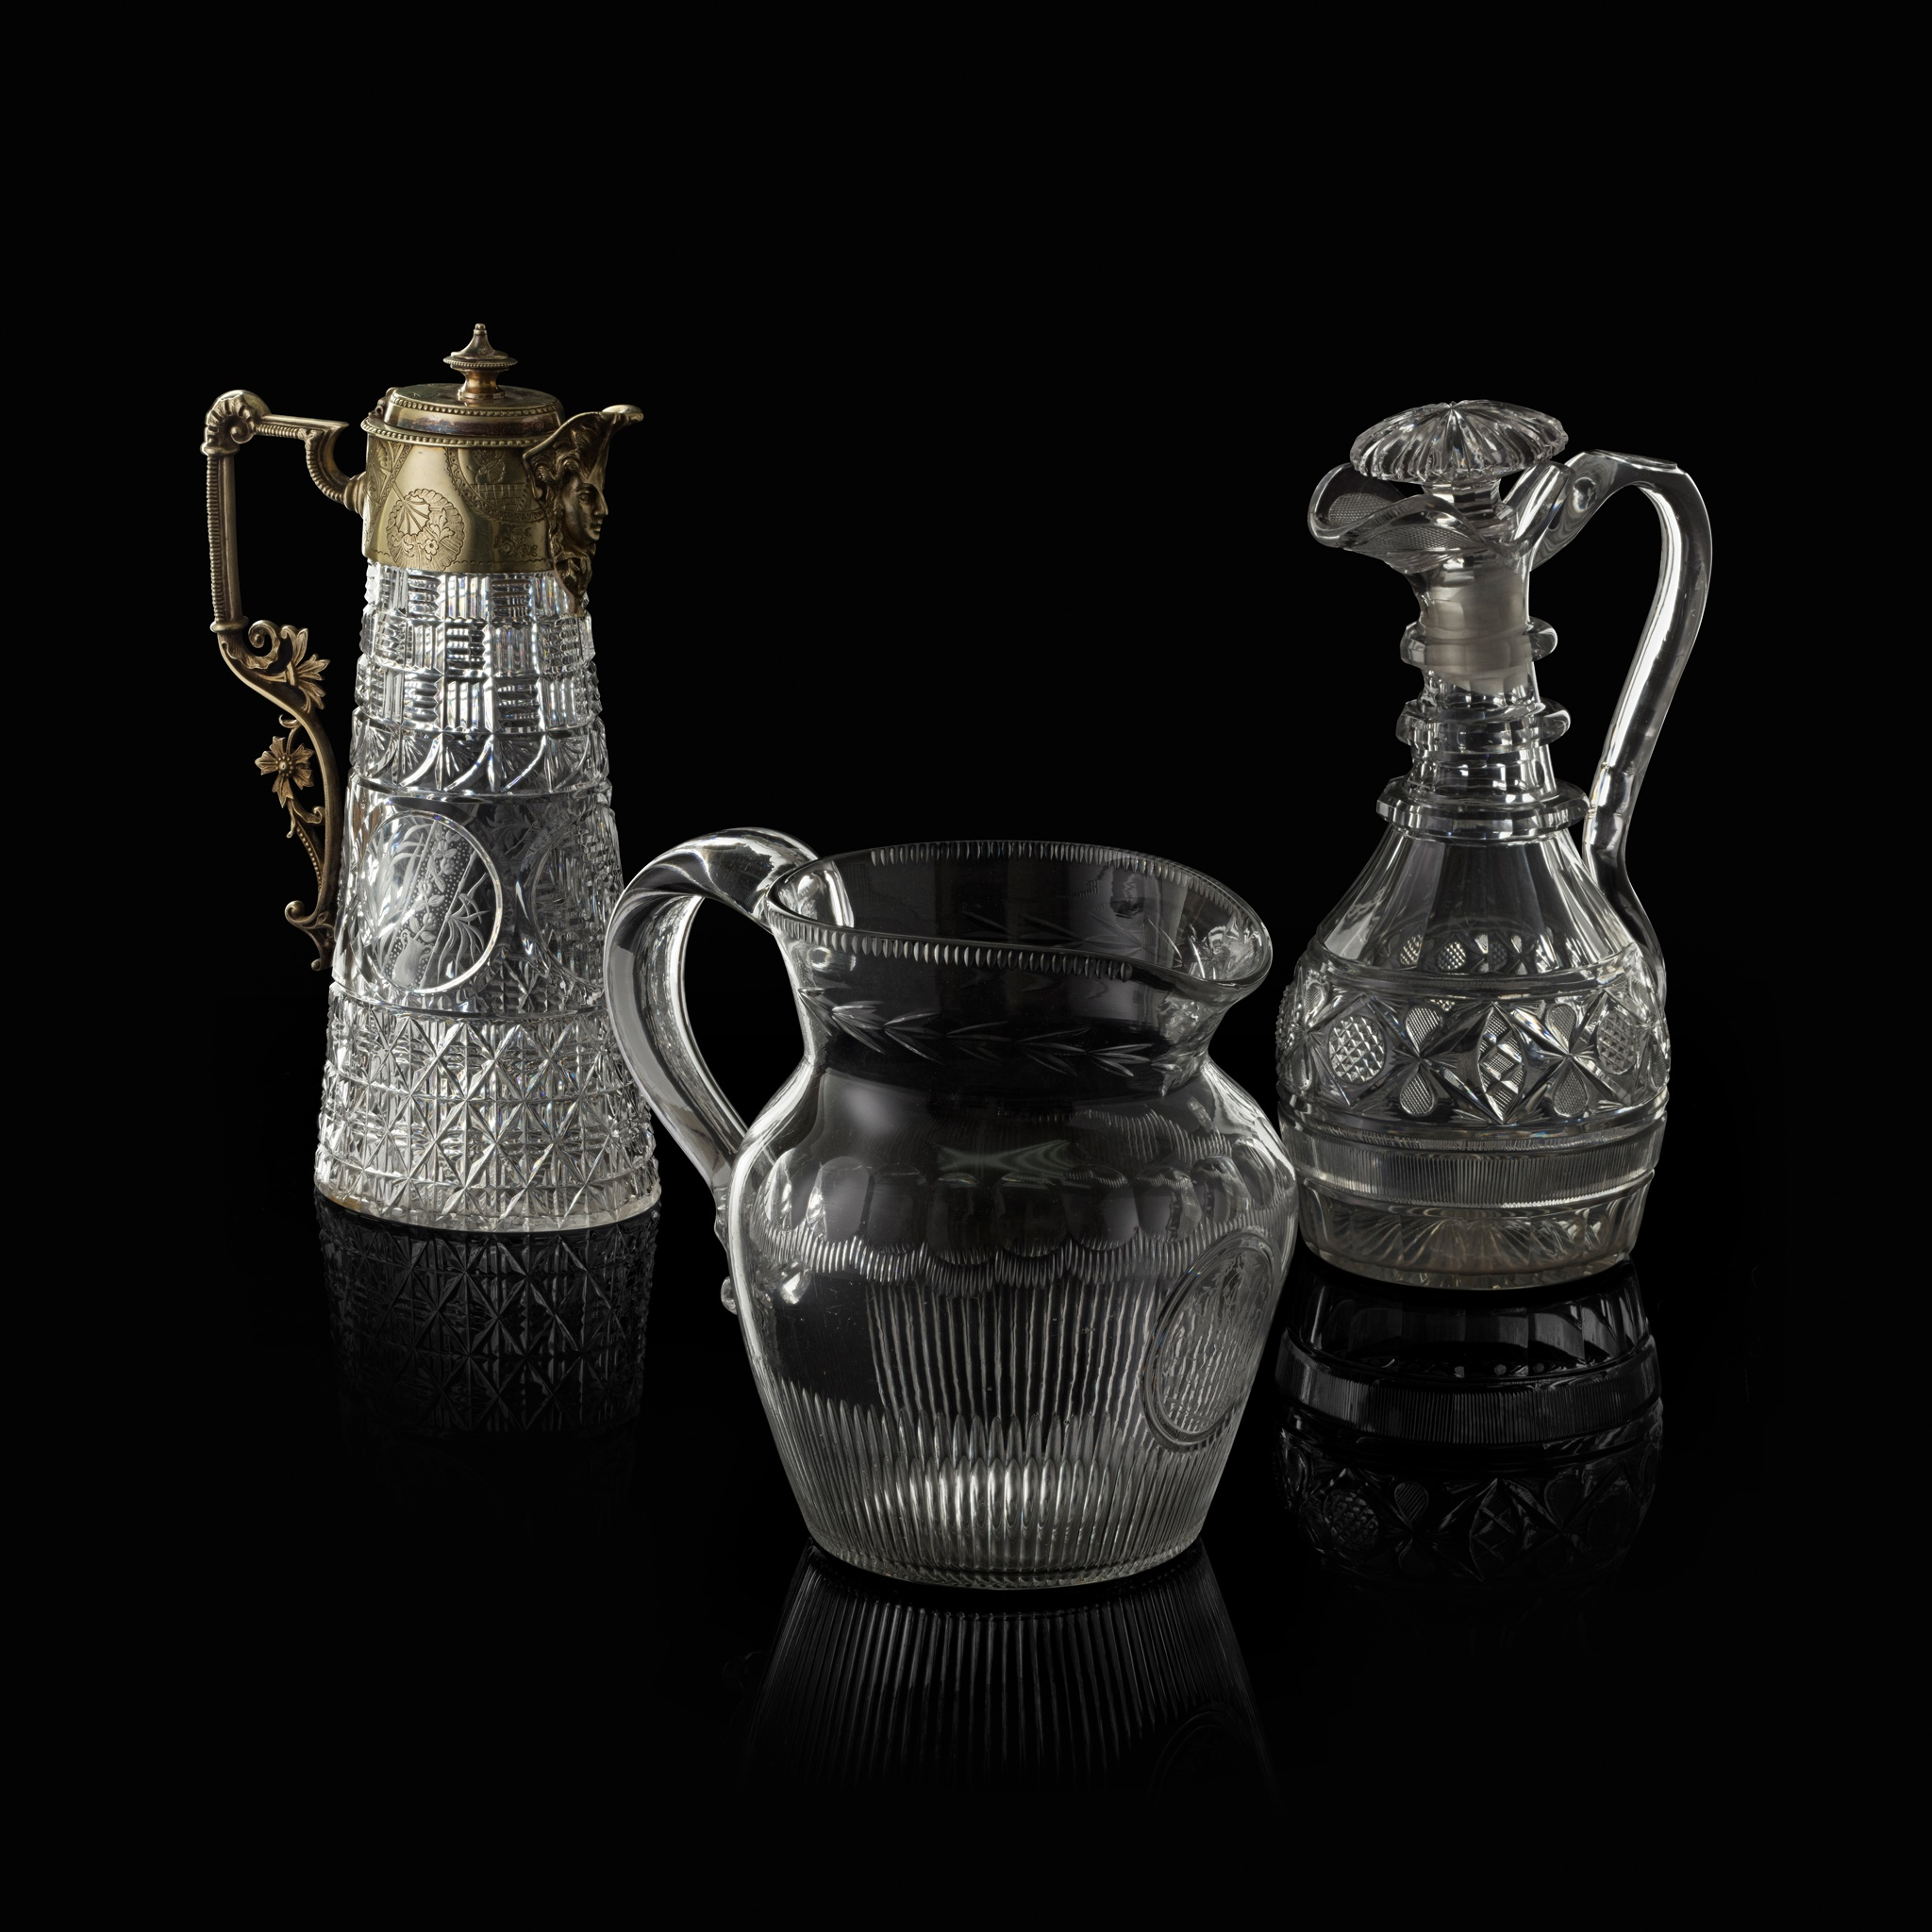 TWO CUT GLASS CLARET JUGS 19TH CENTURY